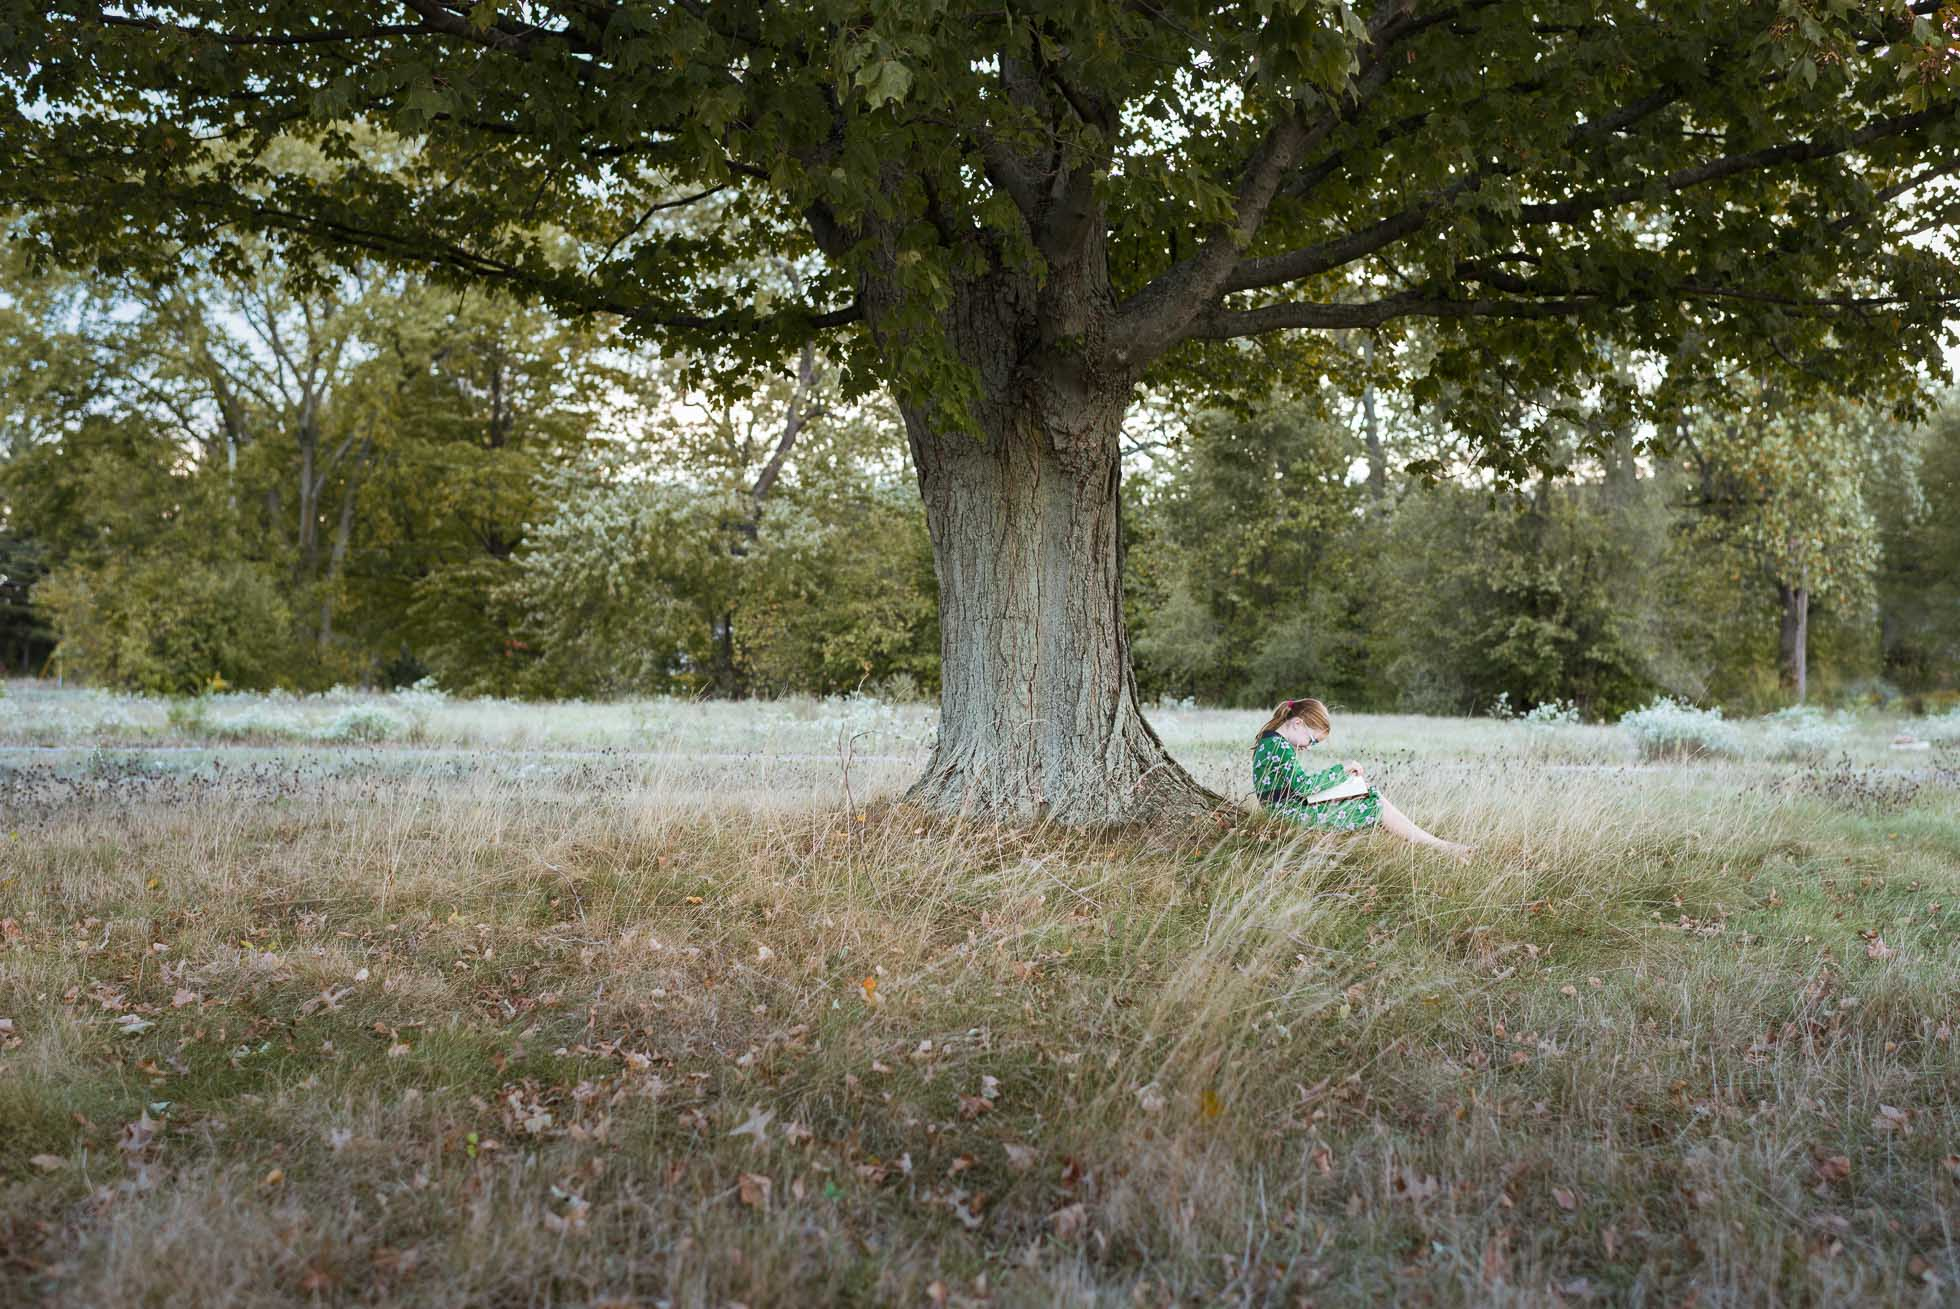 A little girl reads a favorite book while sitting beneath a tree, wearing a green dress.